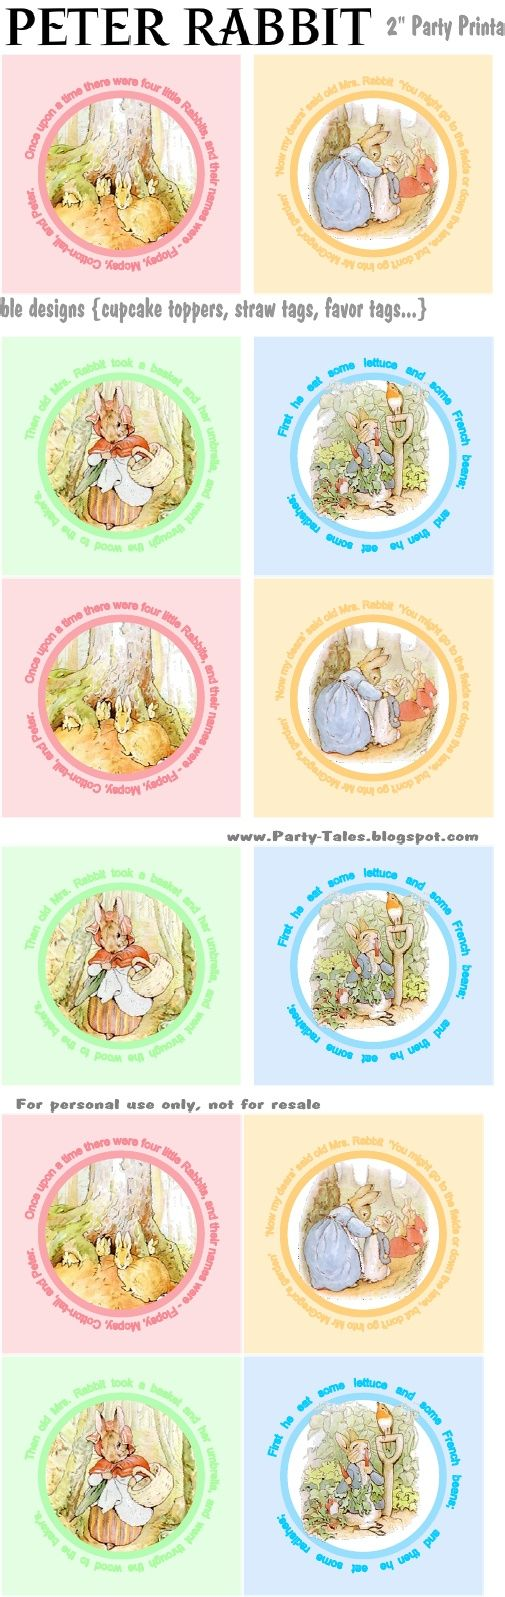 Peter Rabbit Cupcake Toppers free to print